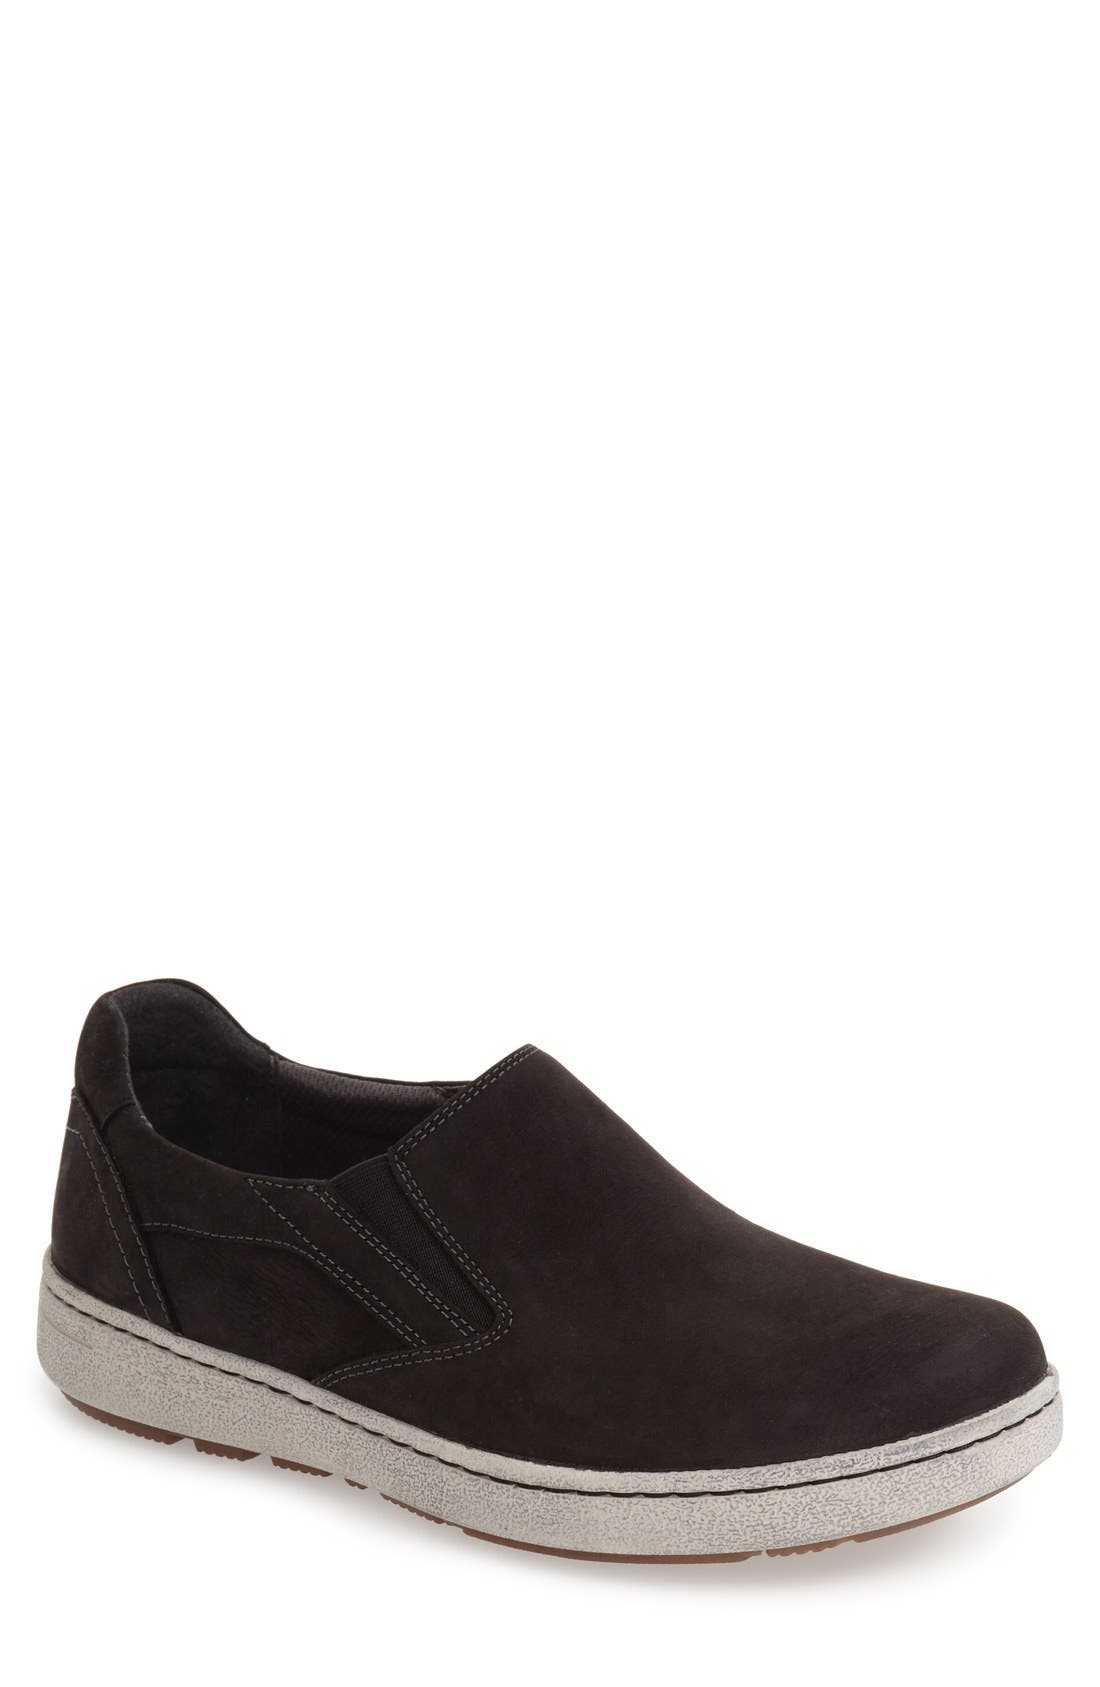 'Viktor' Water Resistant Slip-On Sneaker,                             Main thumbnail 1, color,                             BLACK MILLED NUBUCK LEATHER